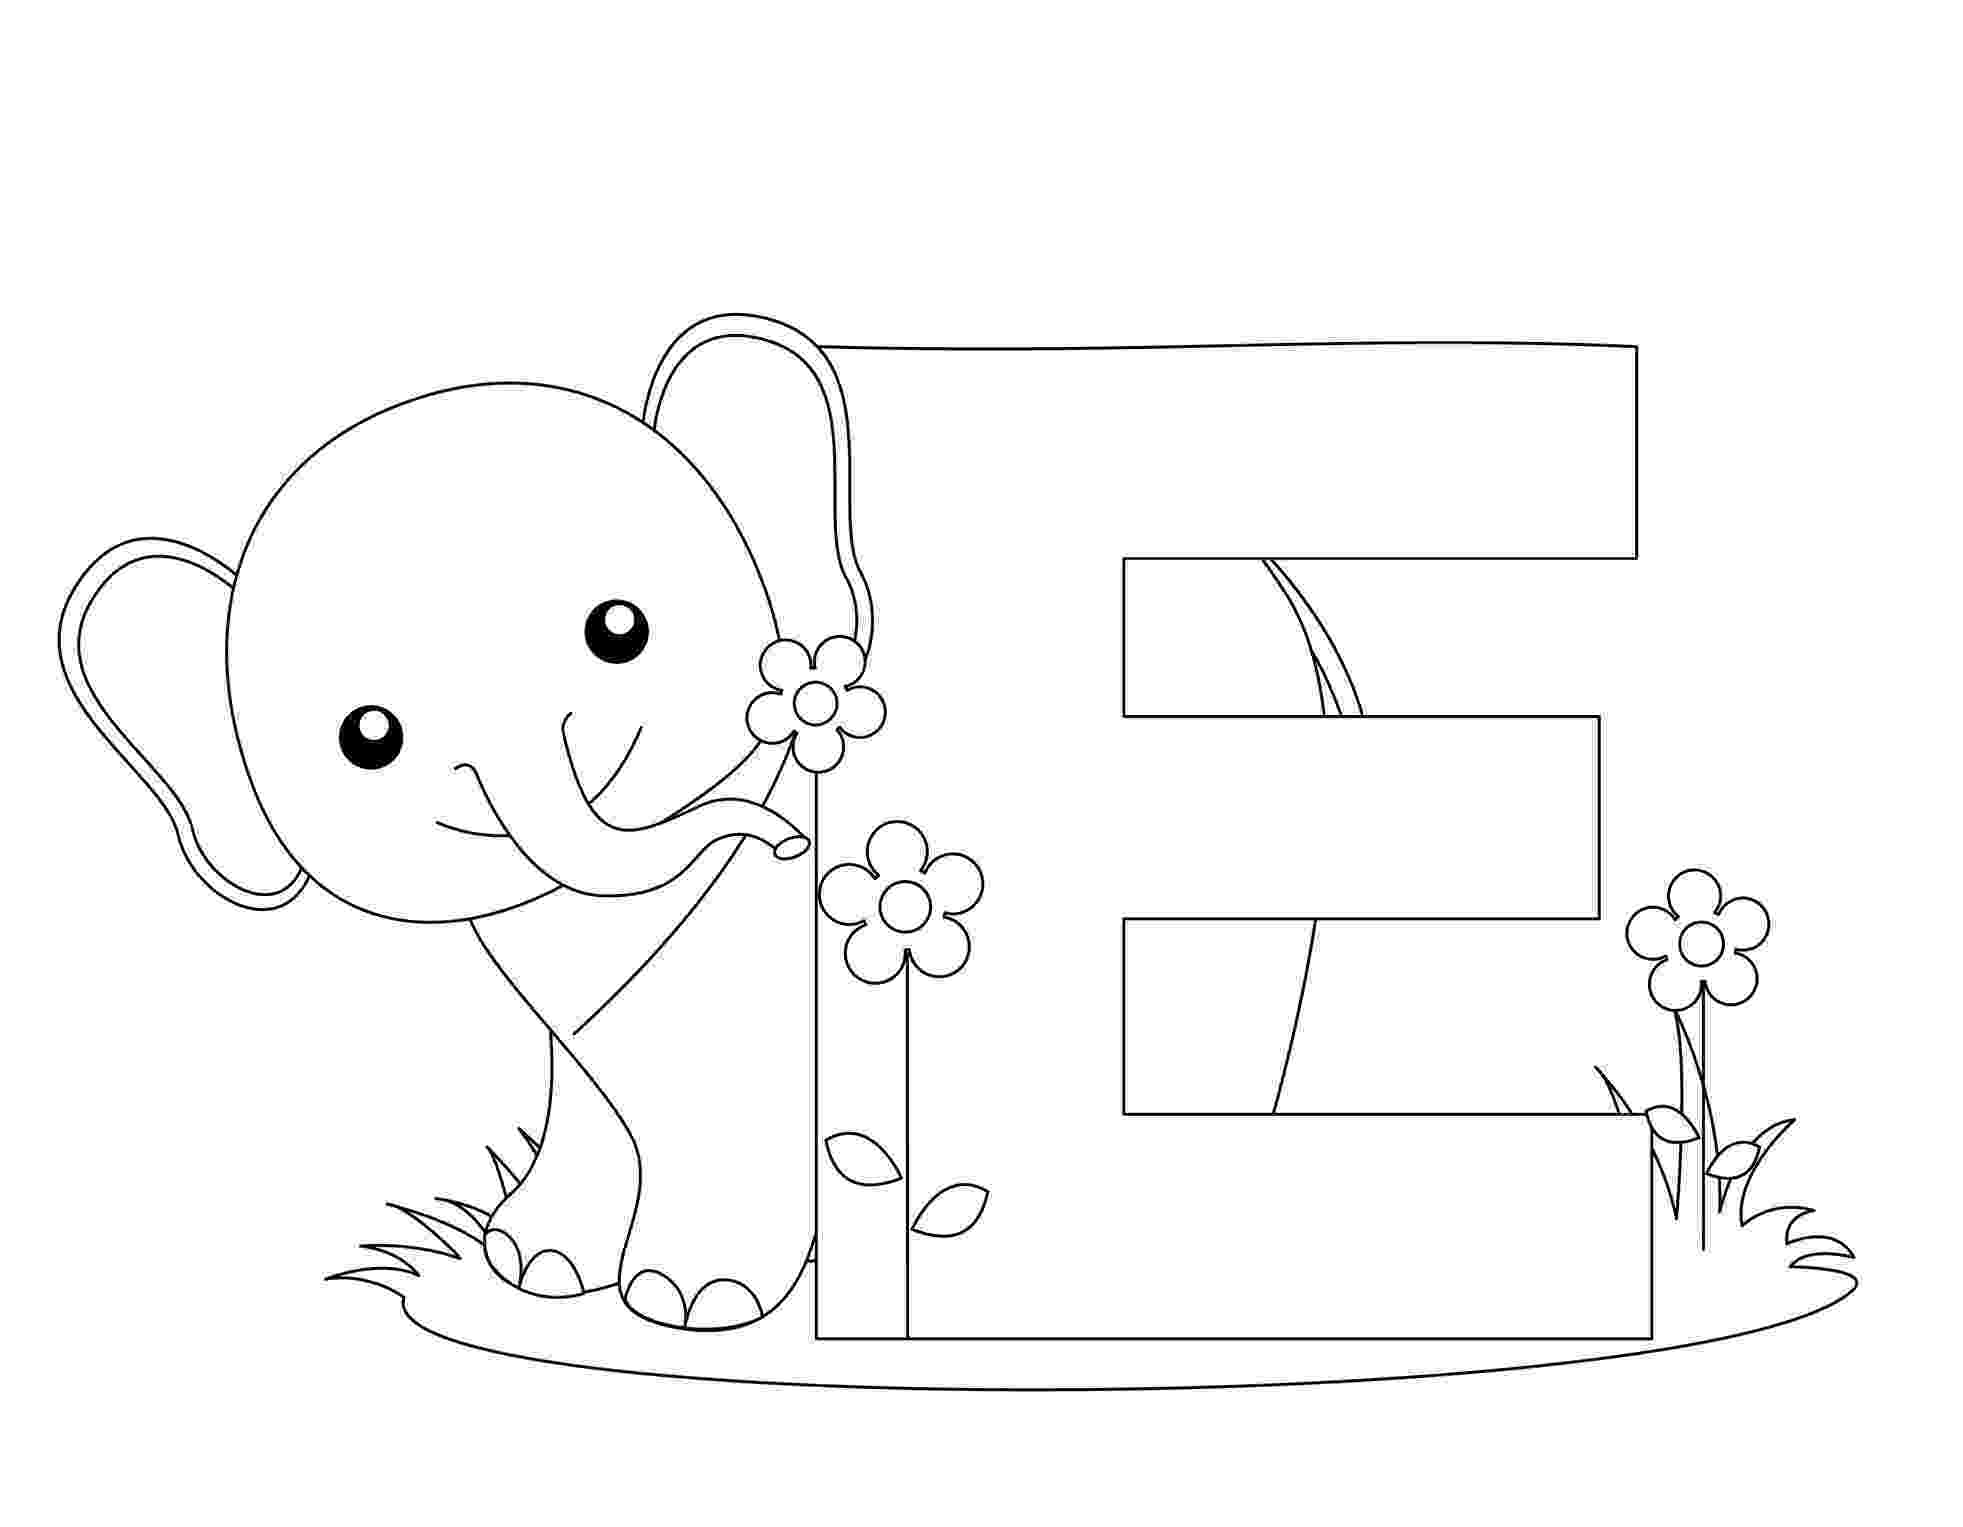 childrens colouring pages alphabet free printable alphabet coloring pages for kids best childrens colouring pages alphabet 1 1